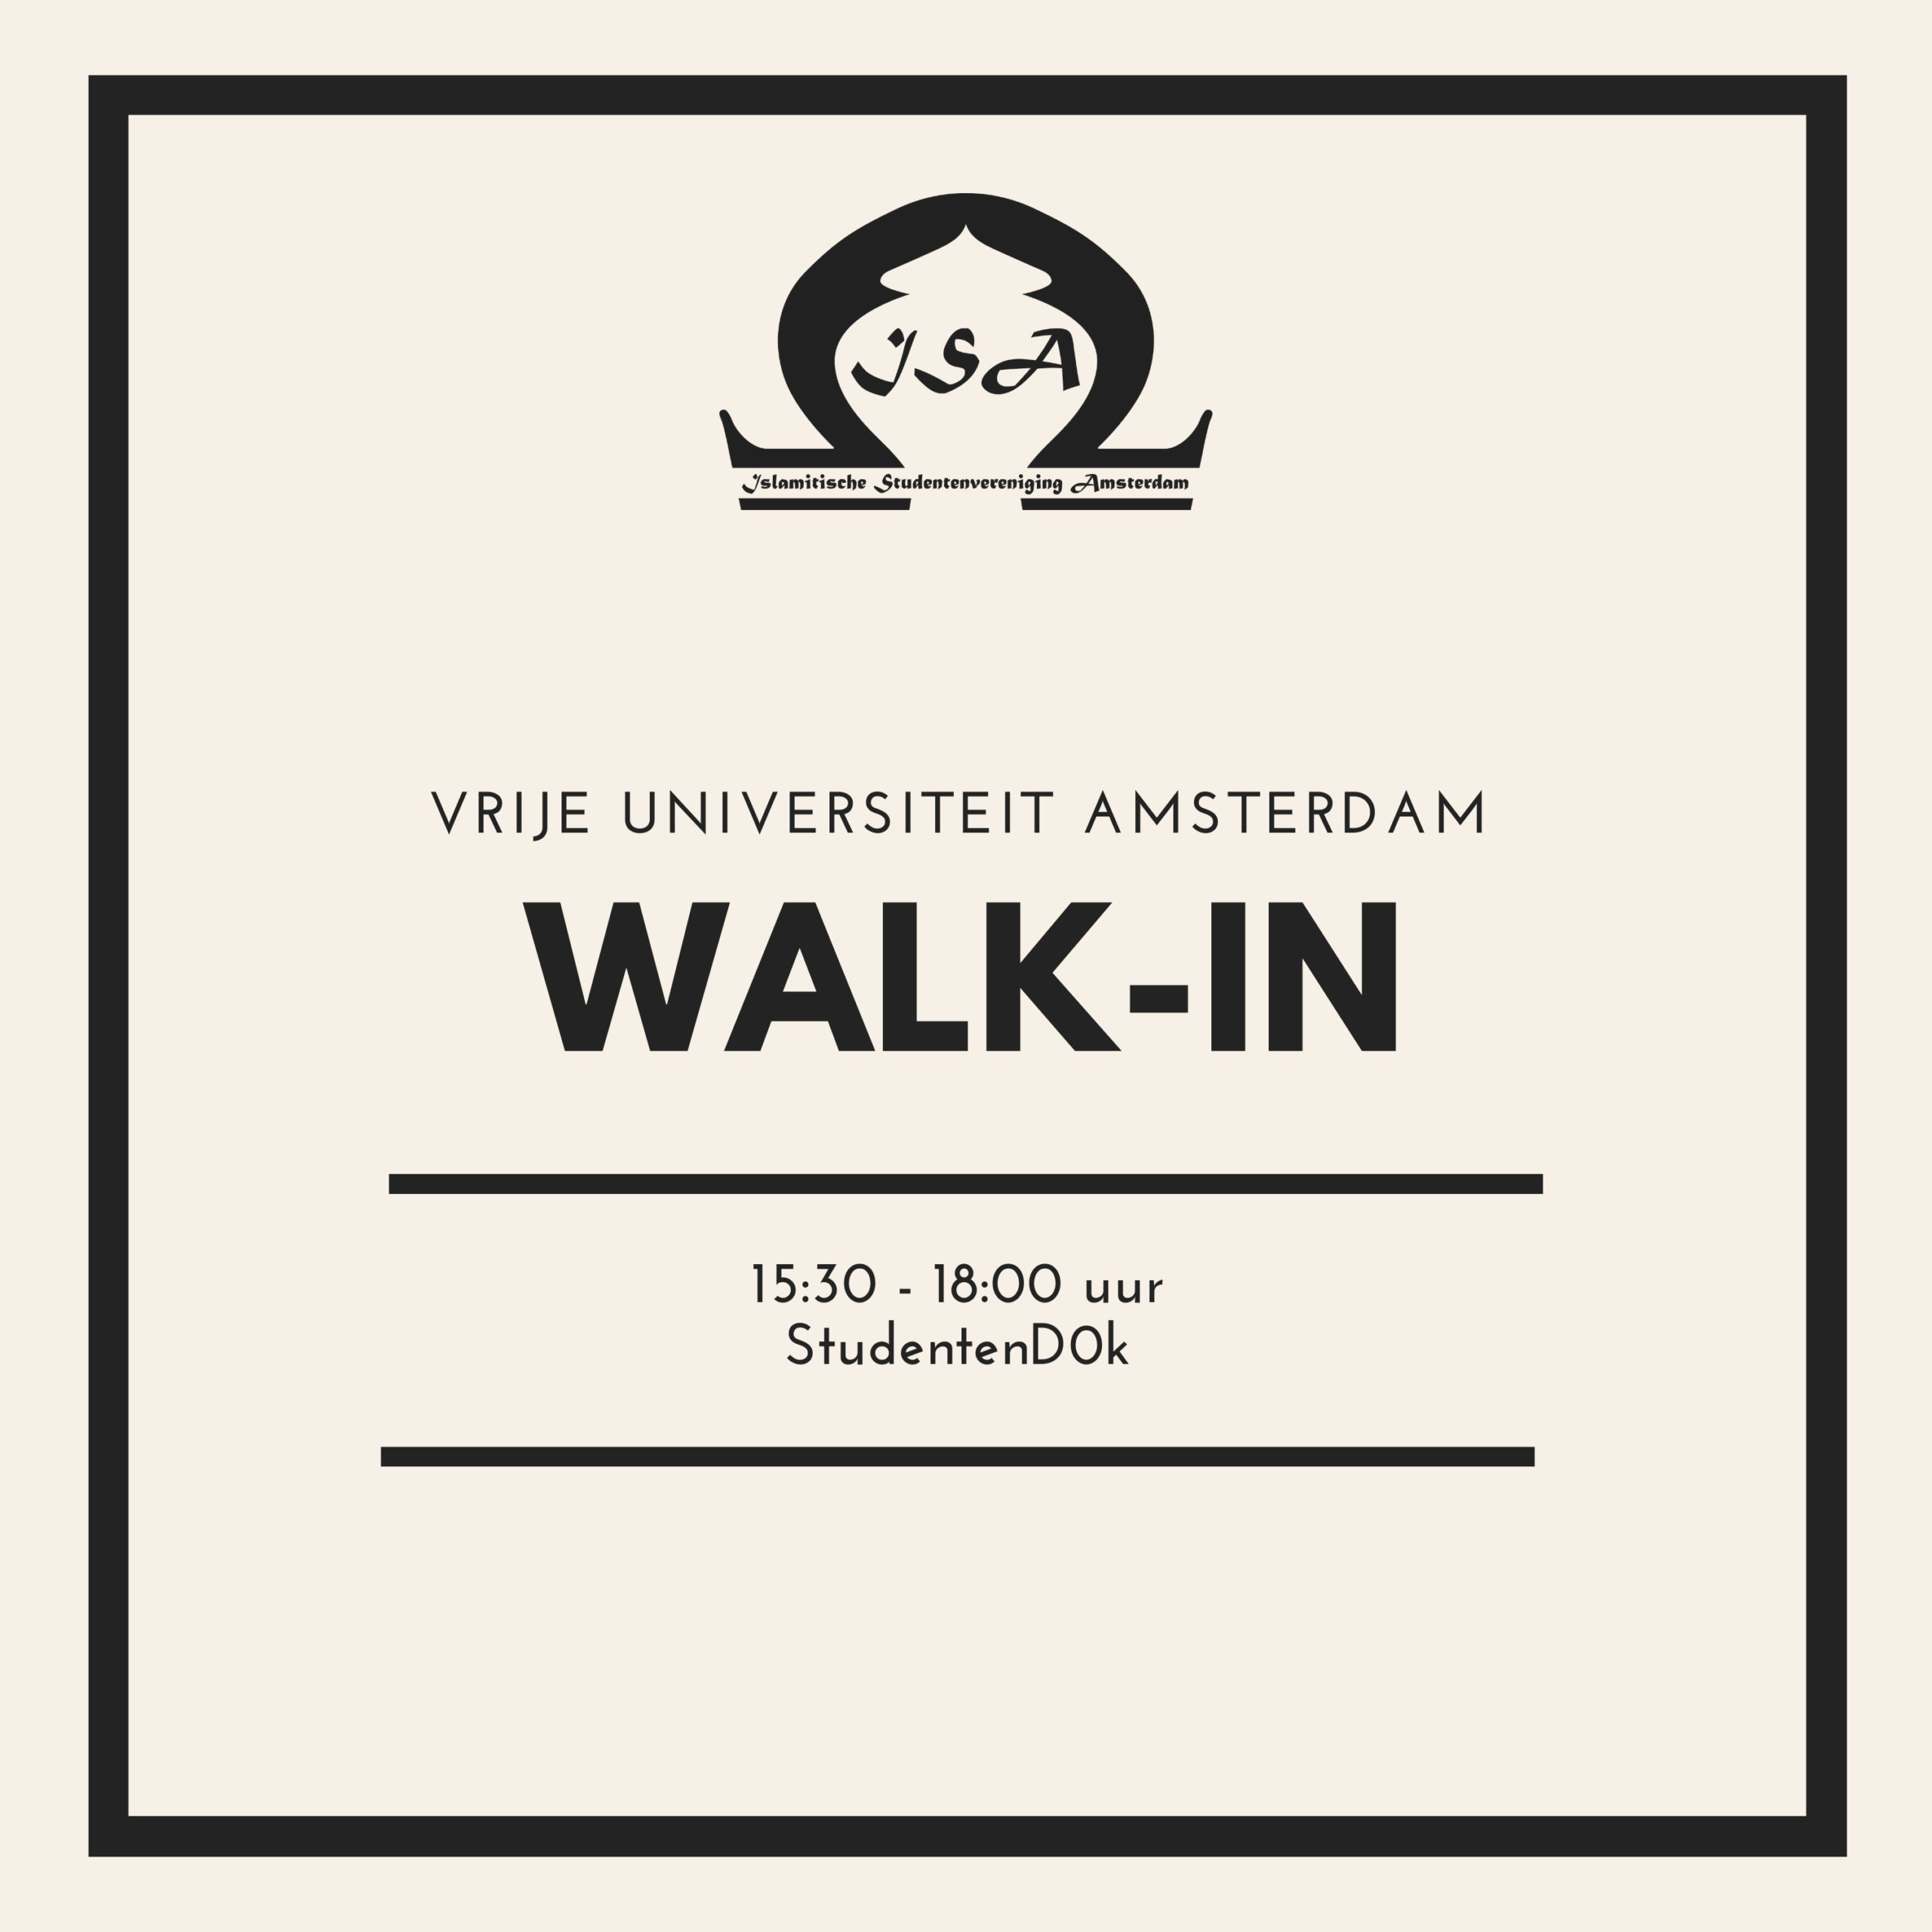 walk-in-vu